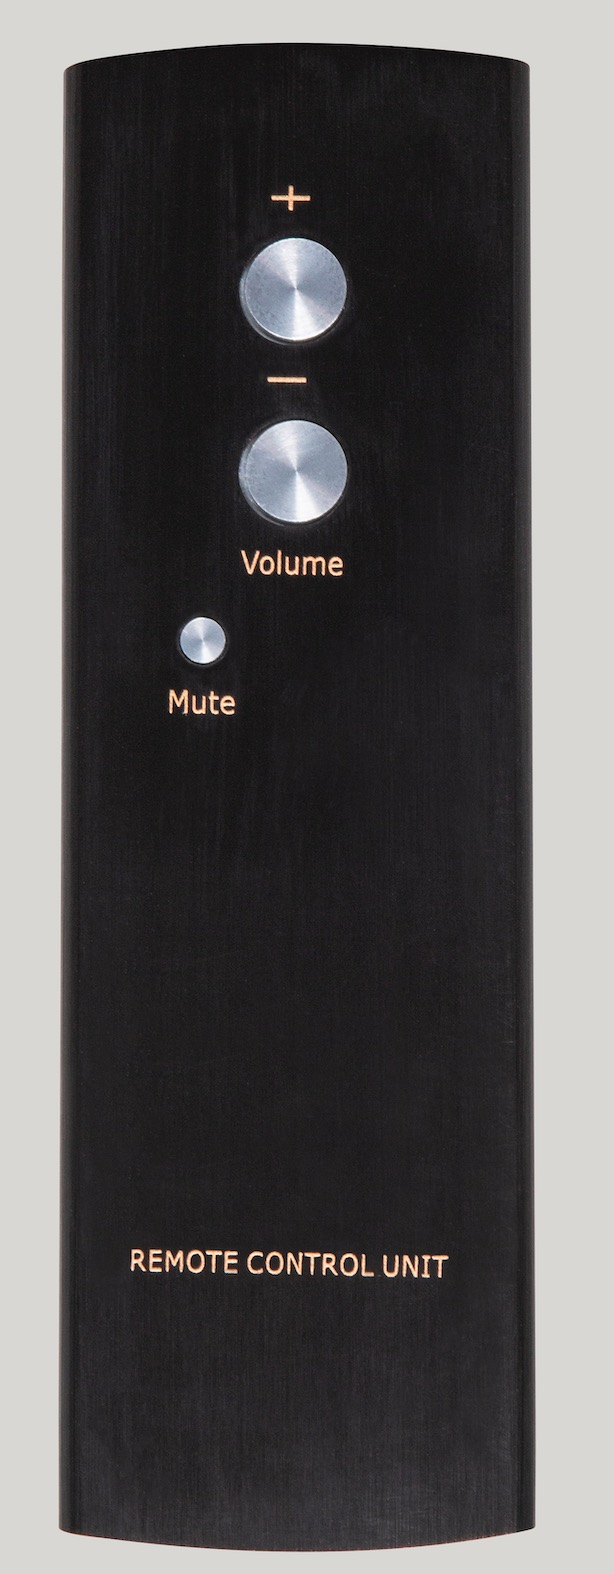 L5 Line Level Pre-Amplifier From Puresound